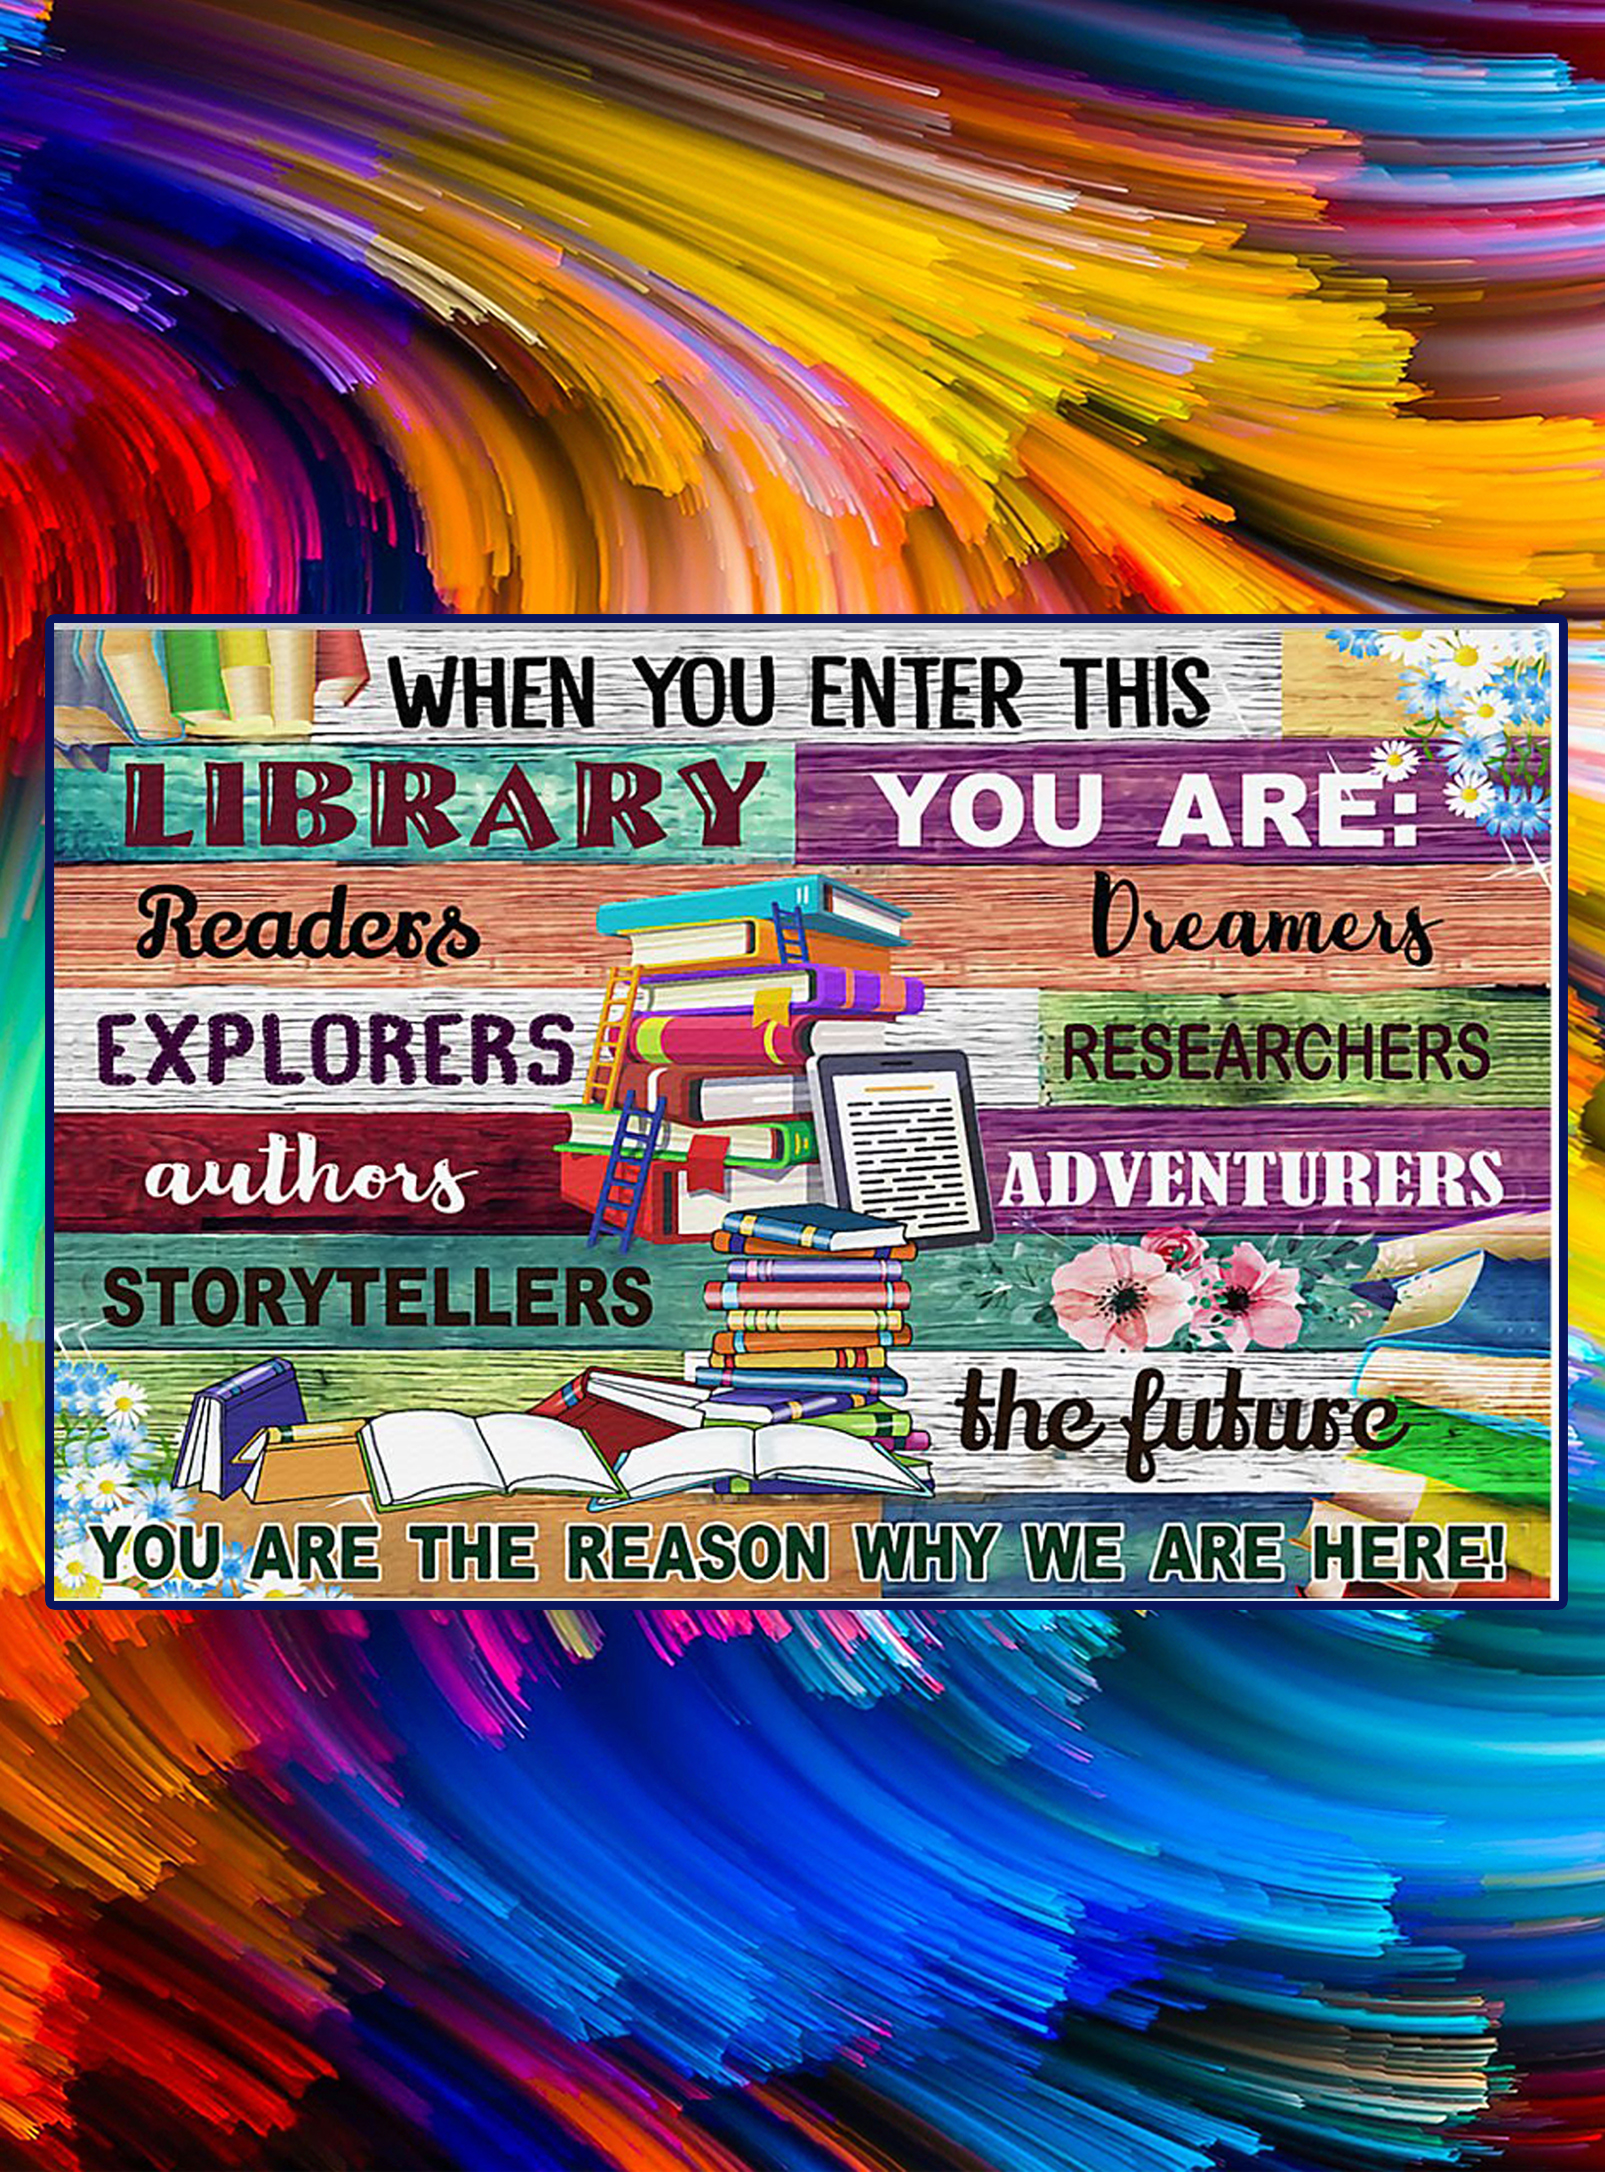 Librarian When you enter this library you are the reason why we are here poster - A4